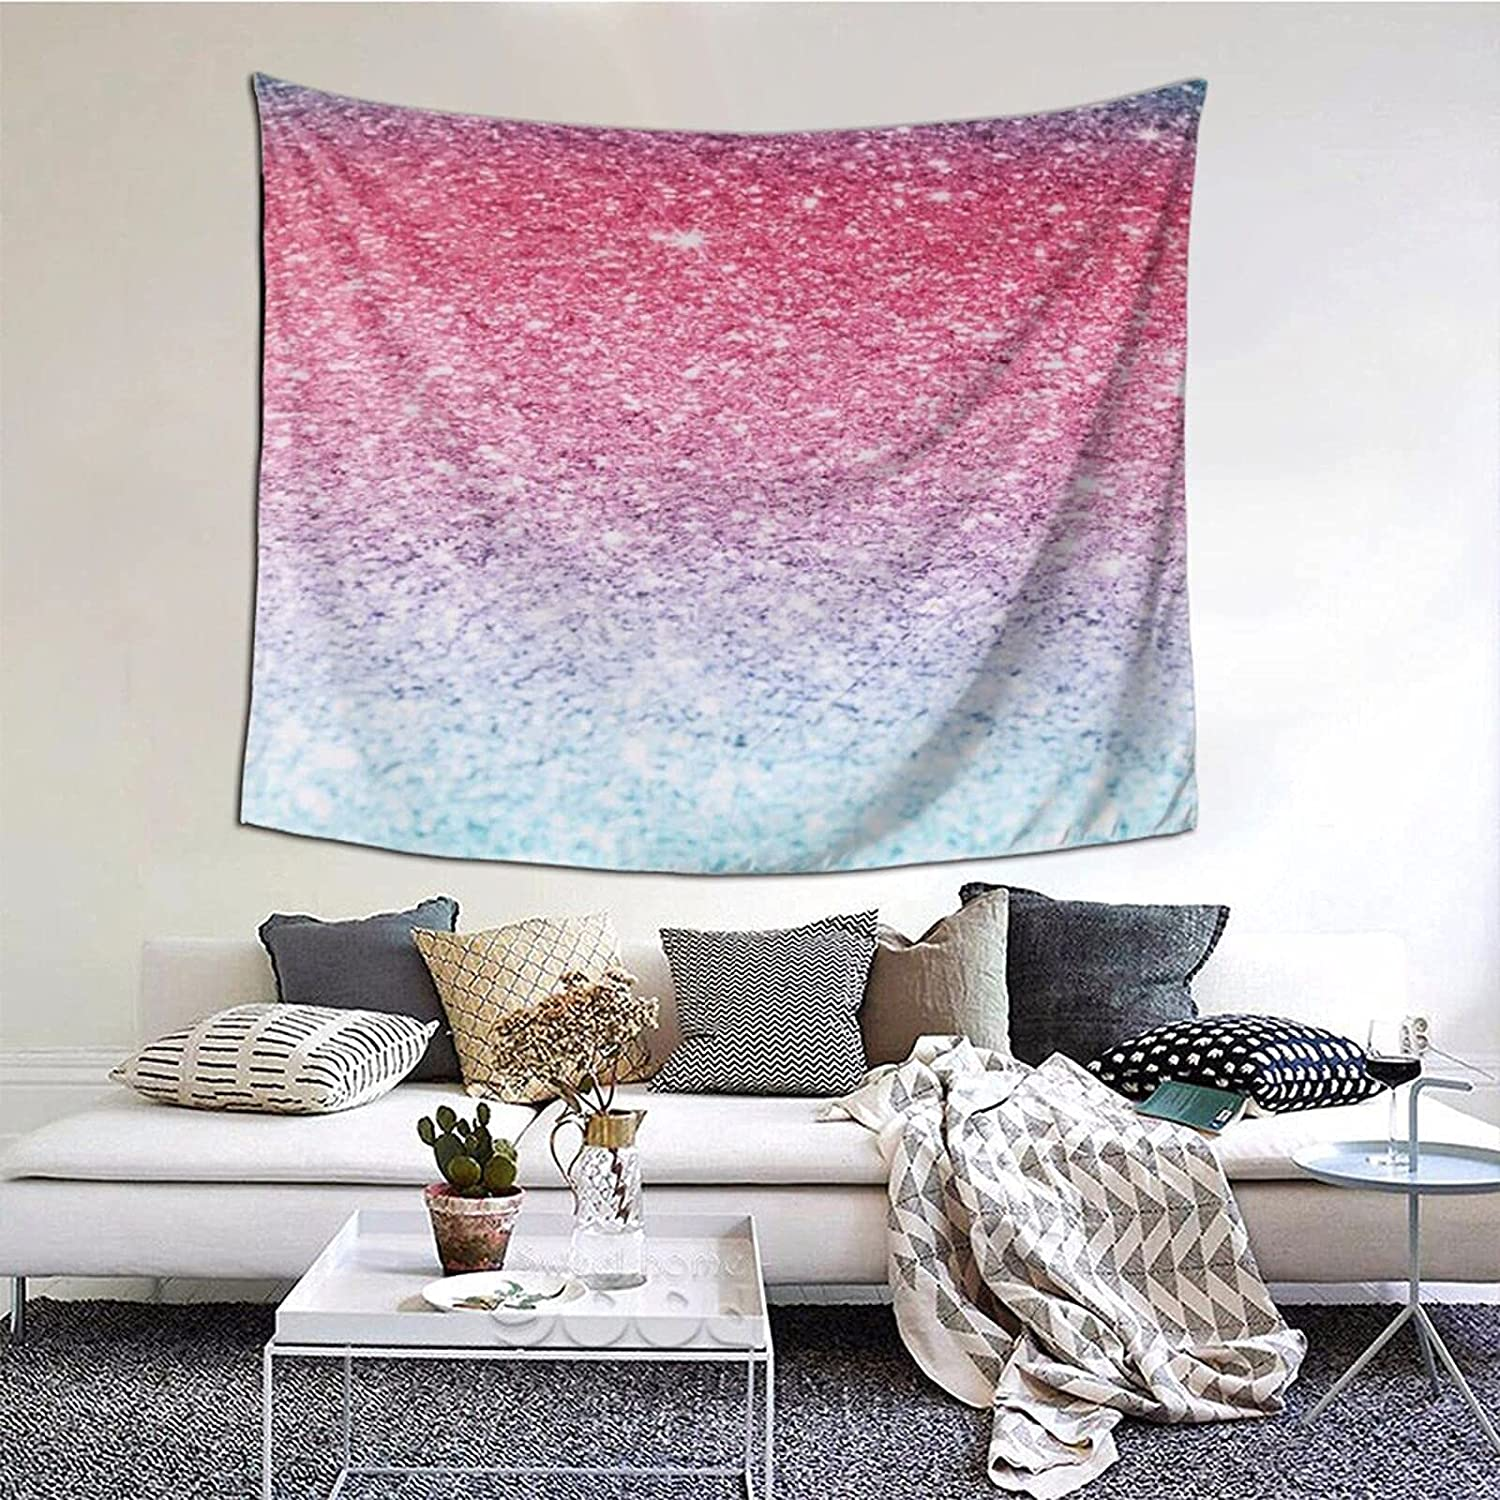 Blue Pink And Purple Pastel Colors Tapestry Wall Hanging Print Tapestry,Bedroom Tapestry.Wall Hanging Dorm Decor For Living Room Bedroom,60 X 51 Inch